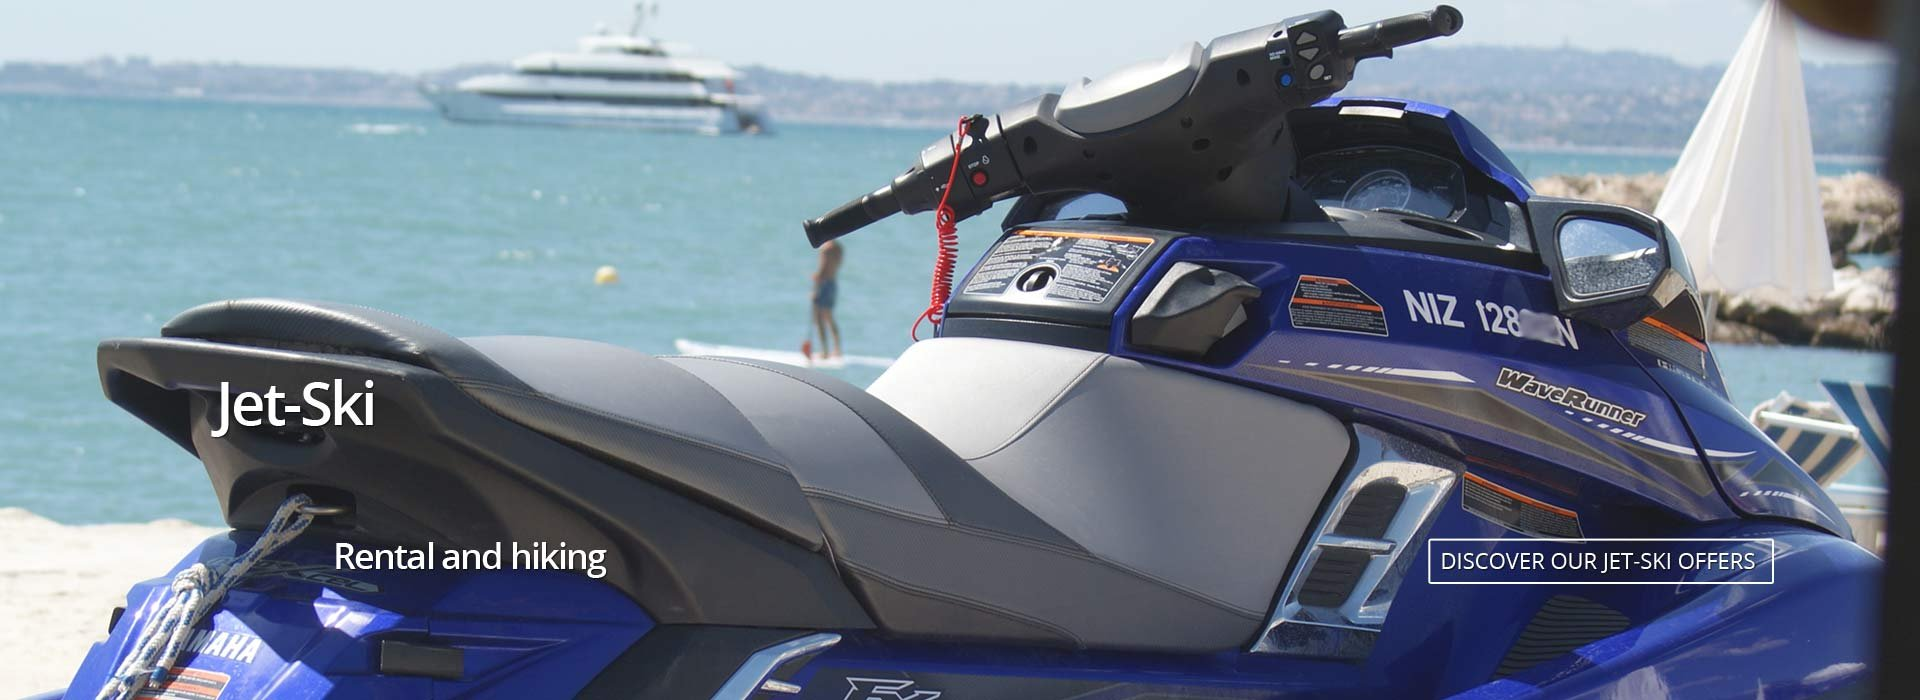 Rental Jet Ski Nice 06 Saint Laurent du Var